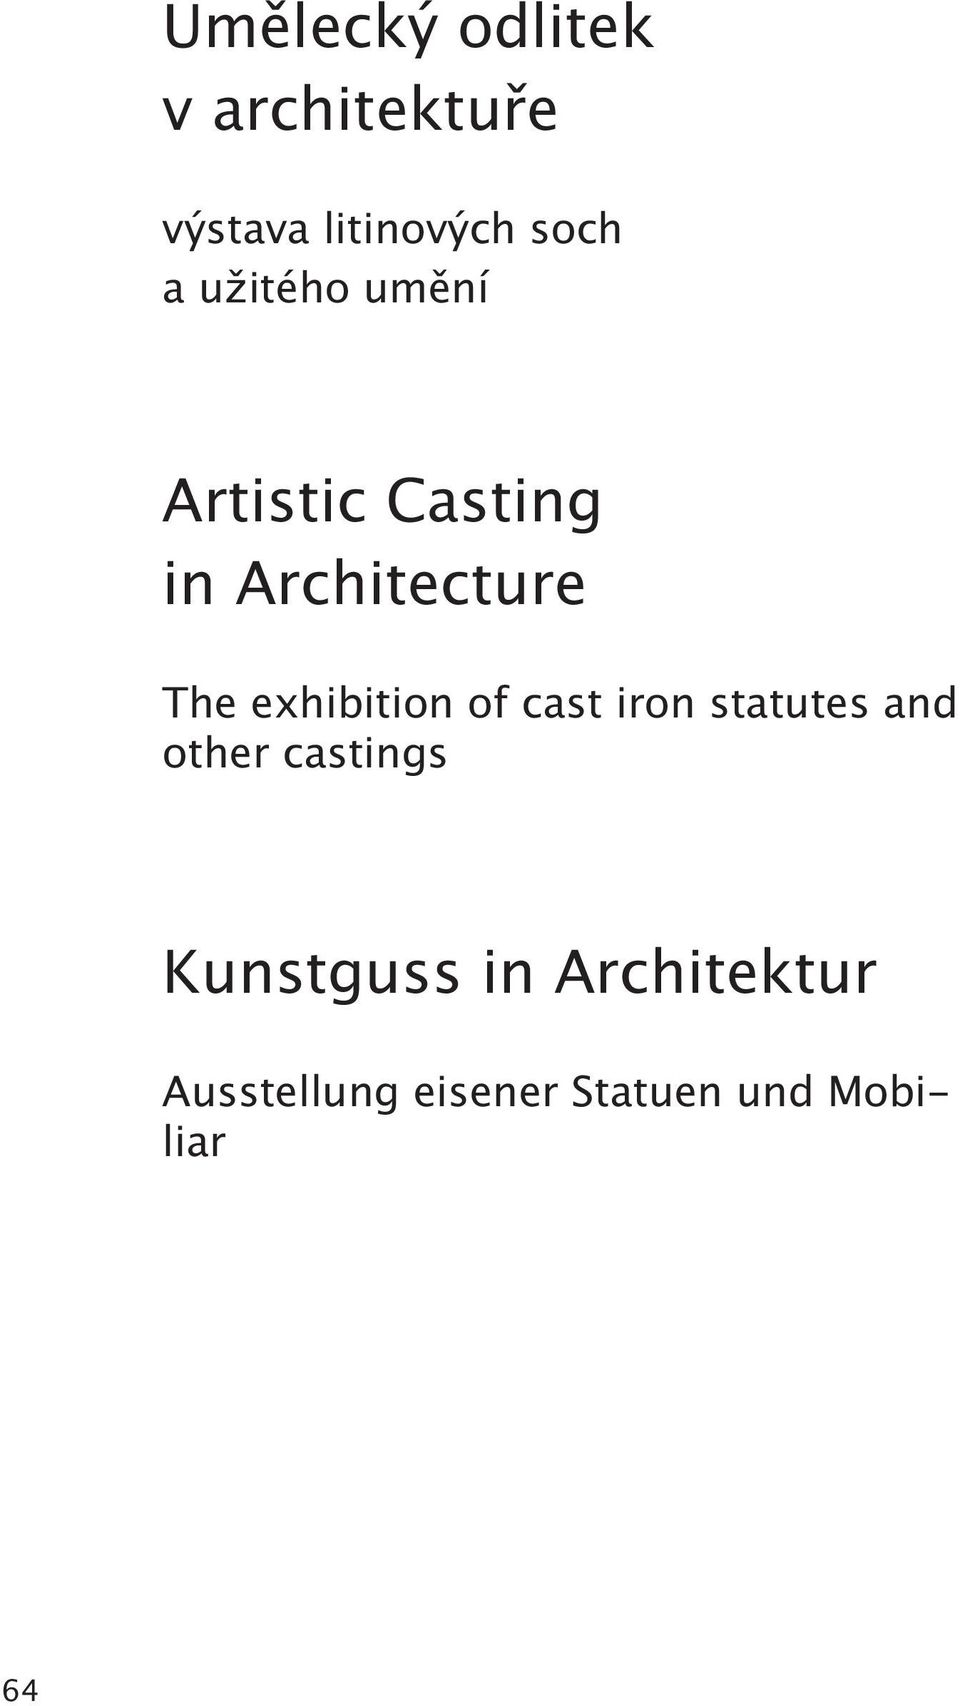 exhibition of cast iron statutes and other castings